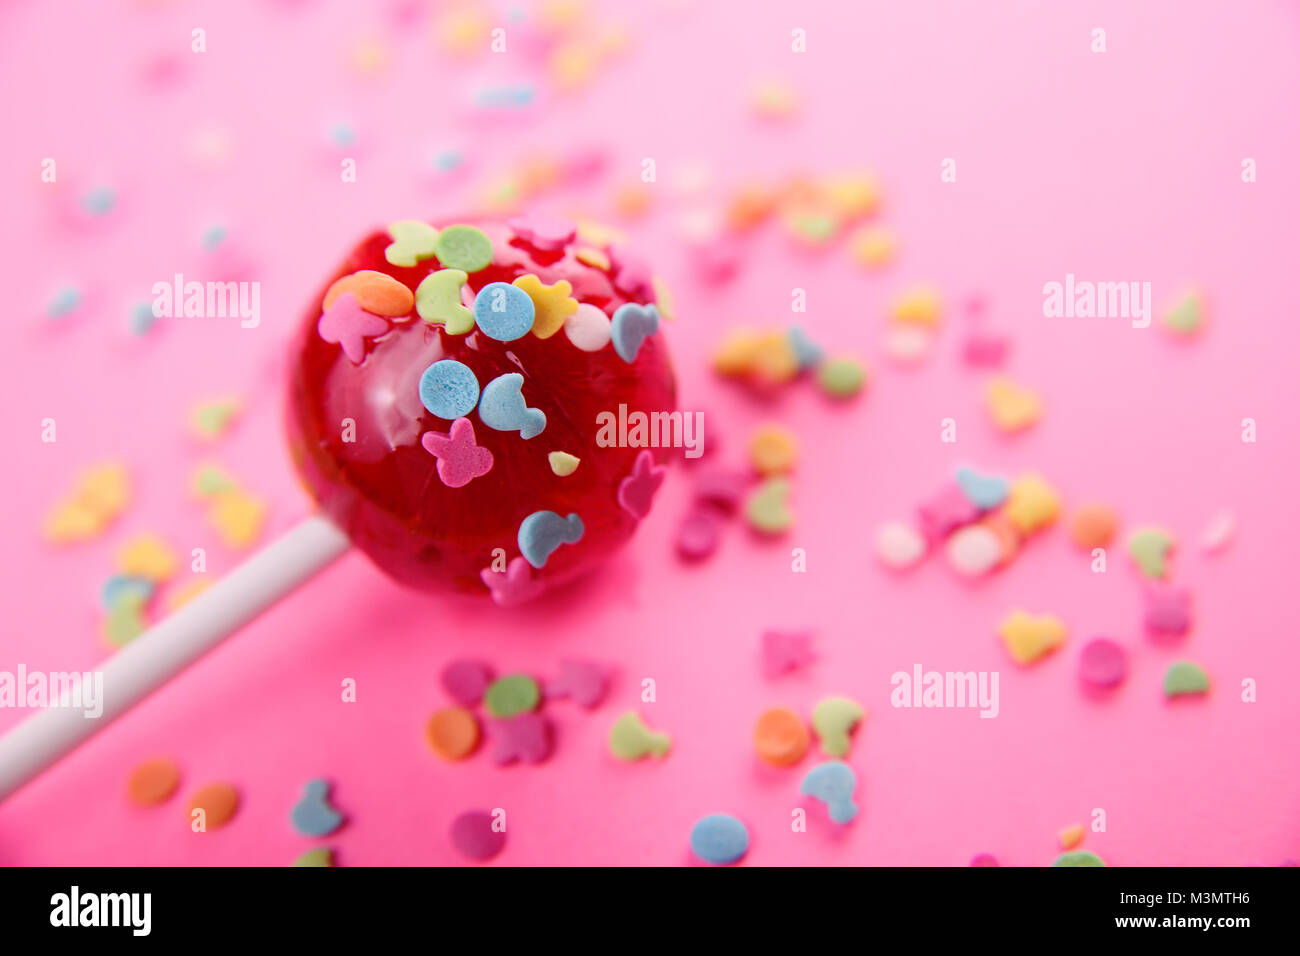 pink round lollipop close-up on pink background. - Stock Image